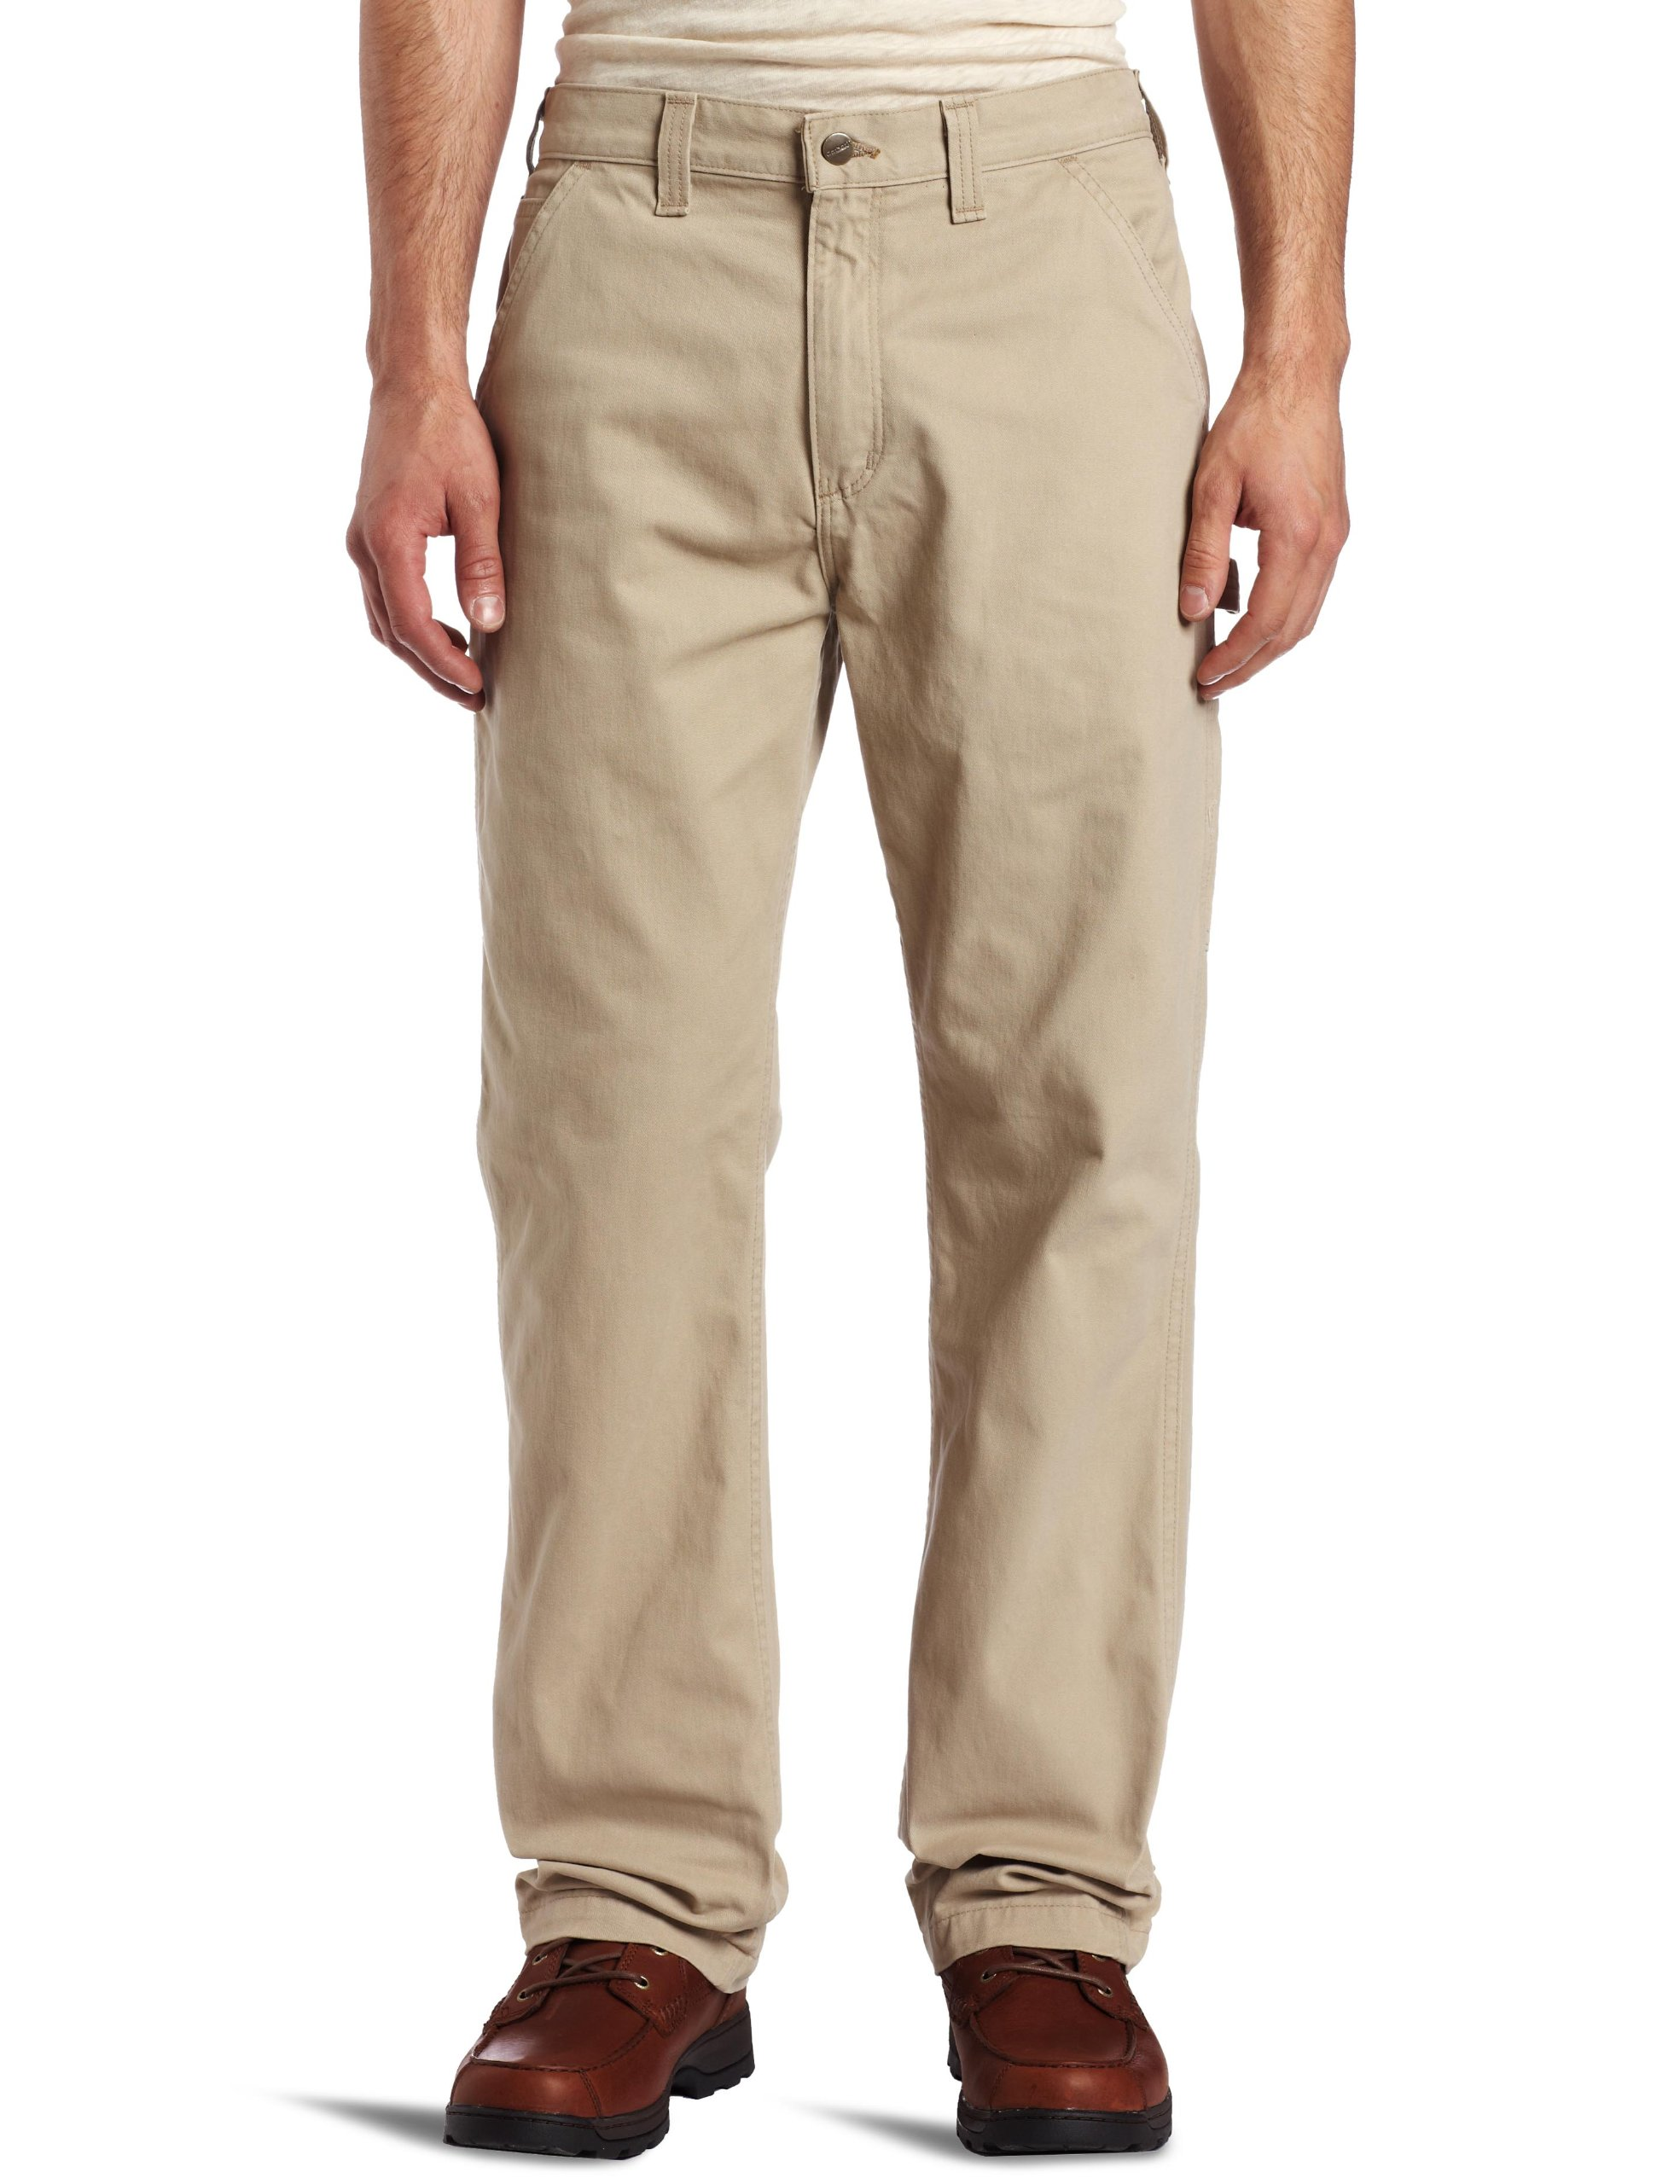 Carhartt Men's Washed Twill Dungaree Relaxed Fit,Field Khaki,33 x 32